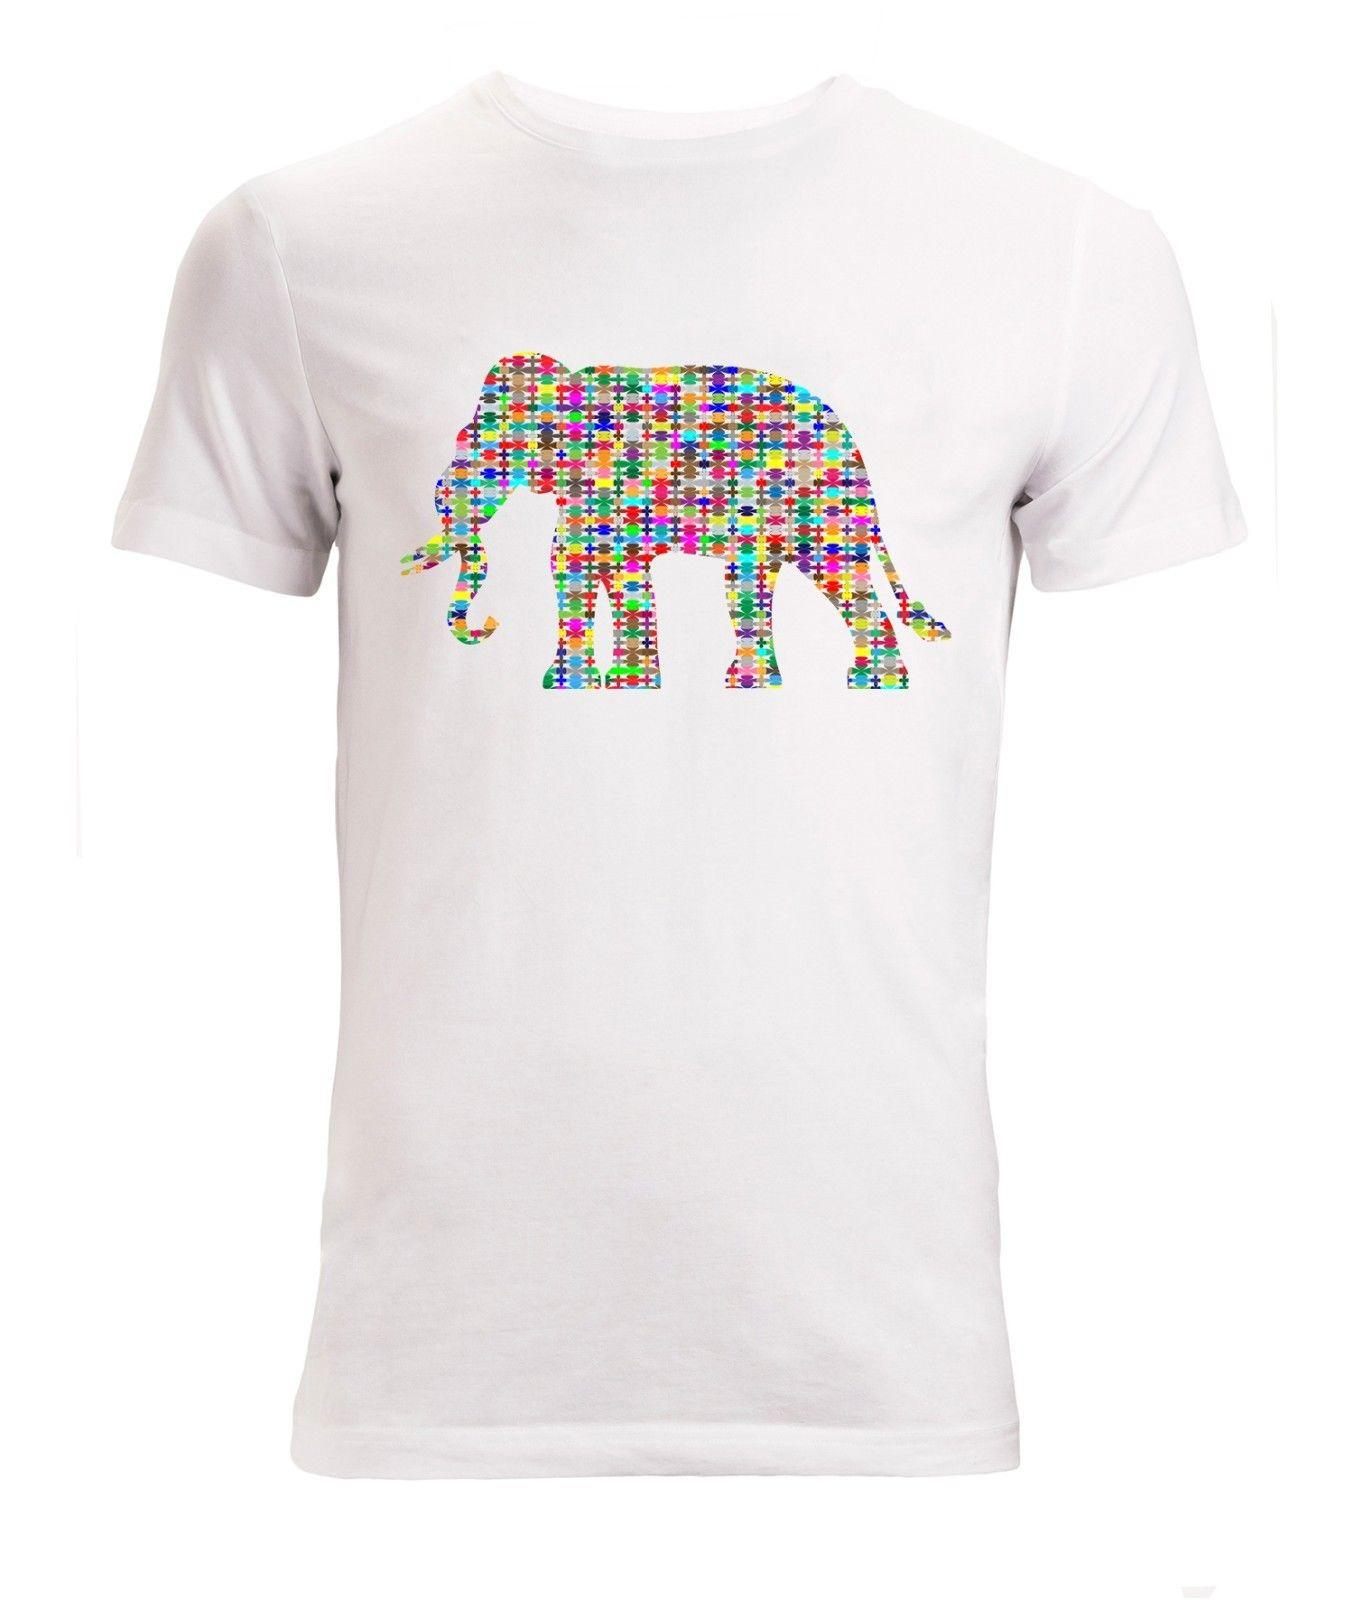 aac45087db301 Abstract Elephant Colorful Pattern Art Men S Woman S Available T Shirt  White Funny Unisex Casual Tshirt Top Funny Shirts Dress Shirt From  Culturepress